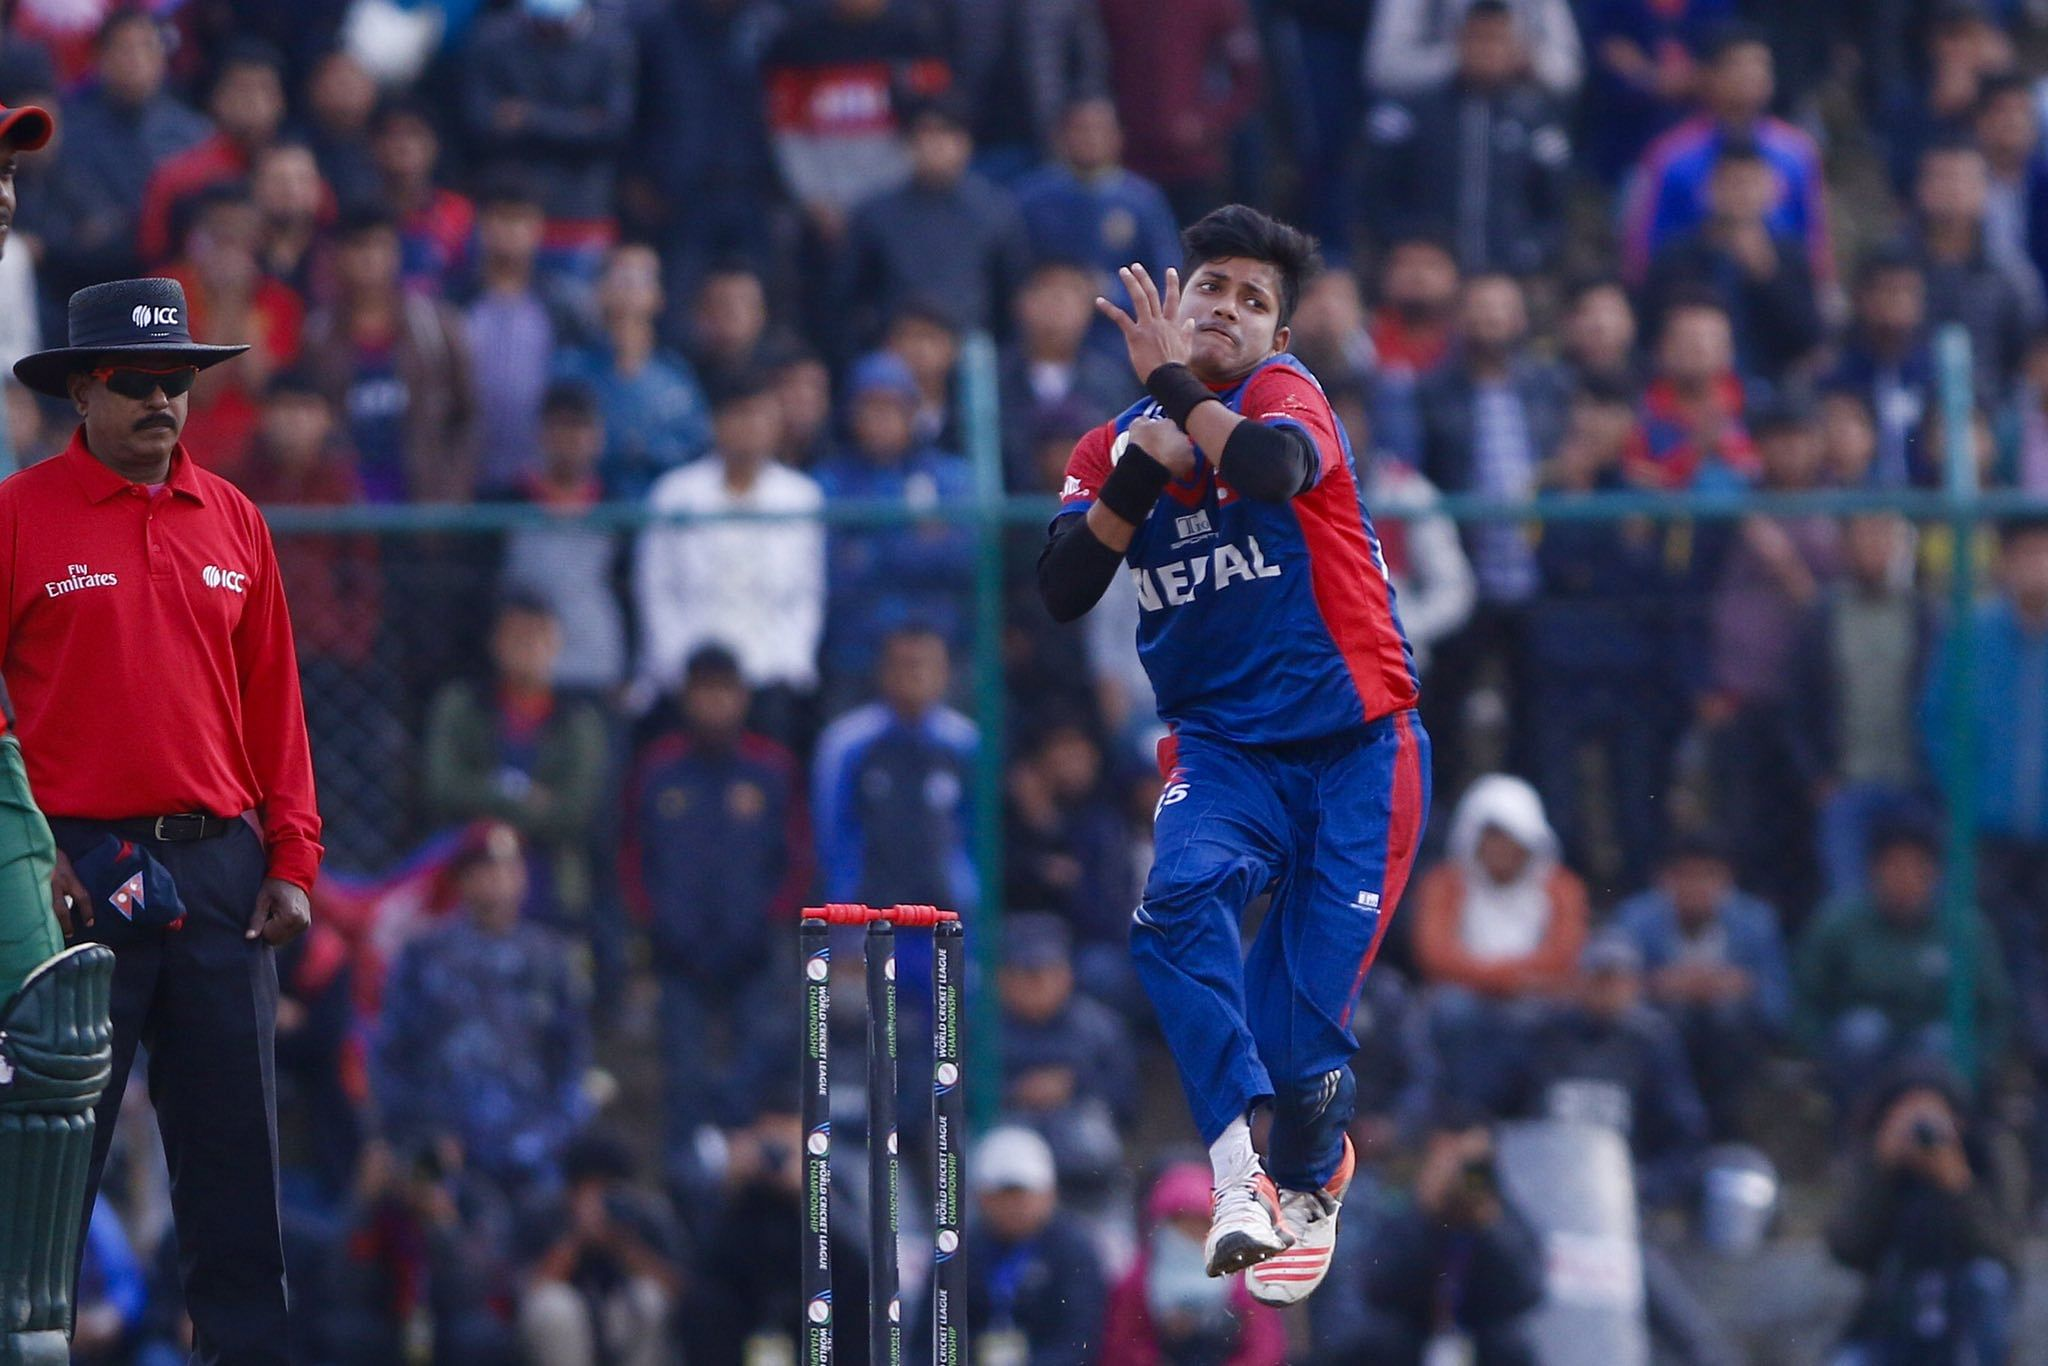 Sandeep Lamichhane in action. (Source: Twitter)